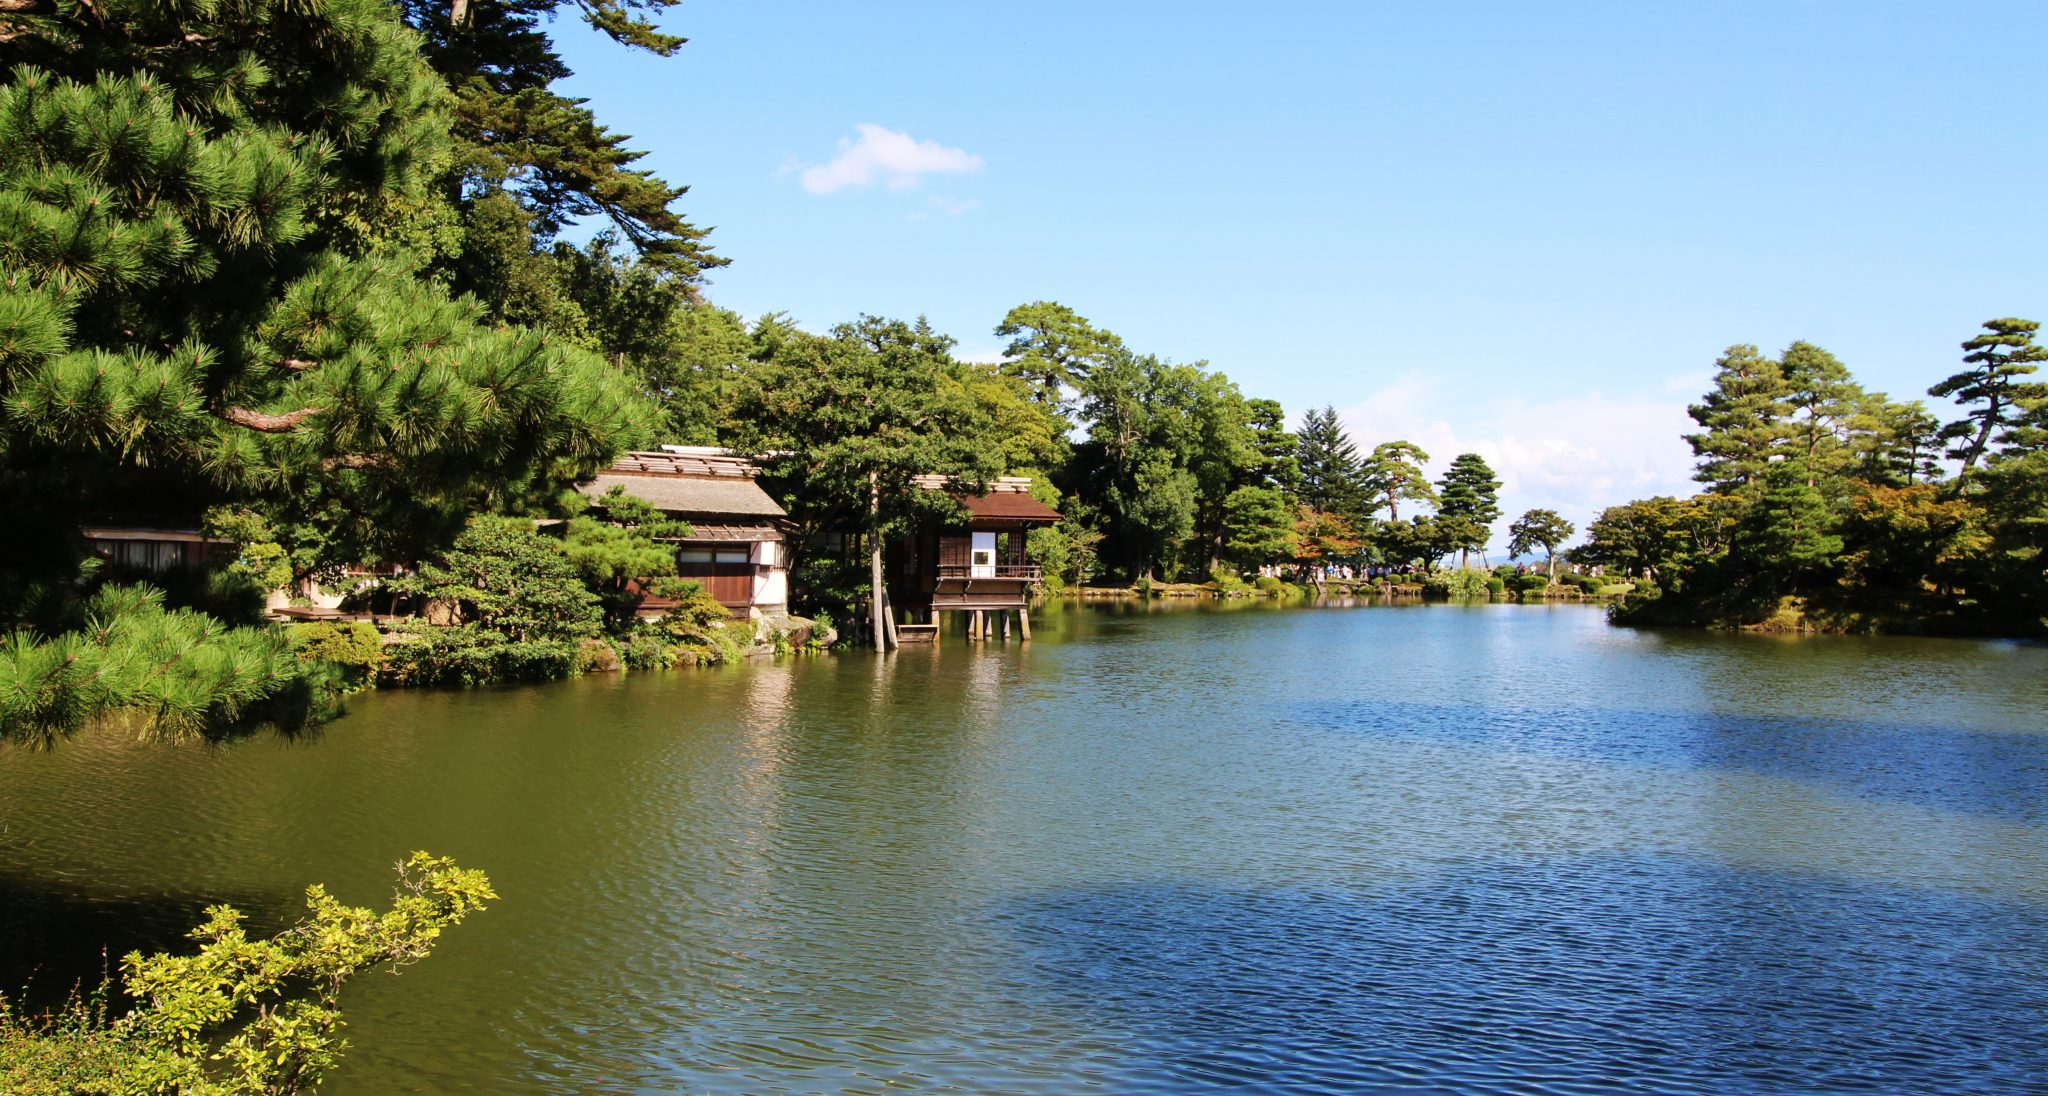 Lake of Kenroku-en Gardens in Kanazawa, Japan